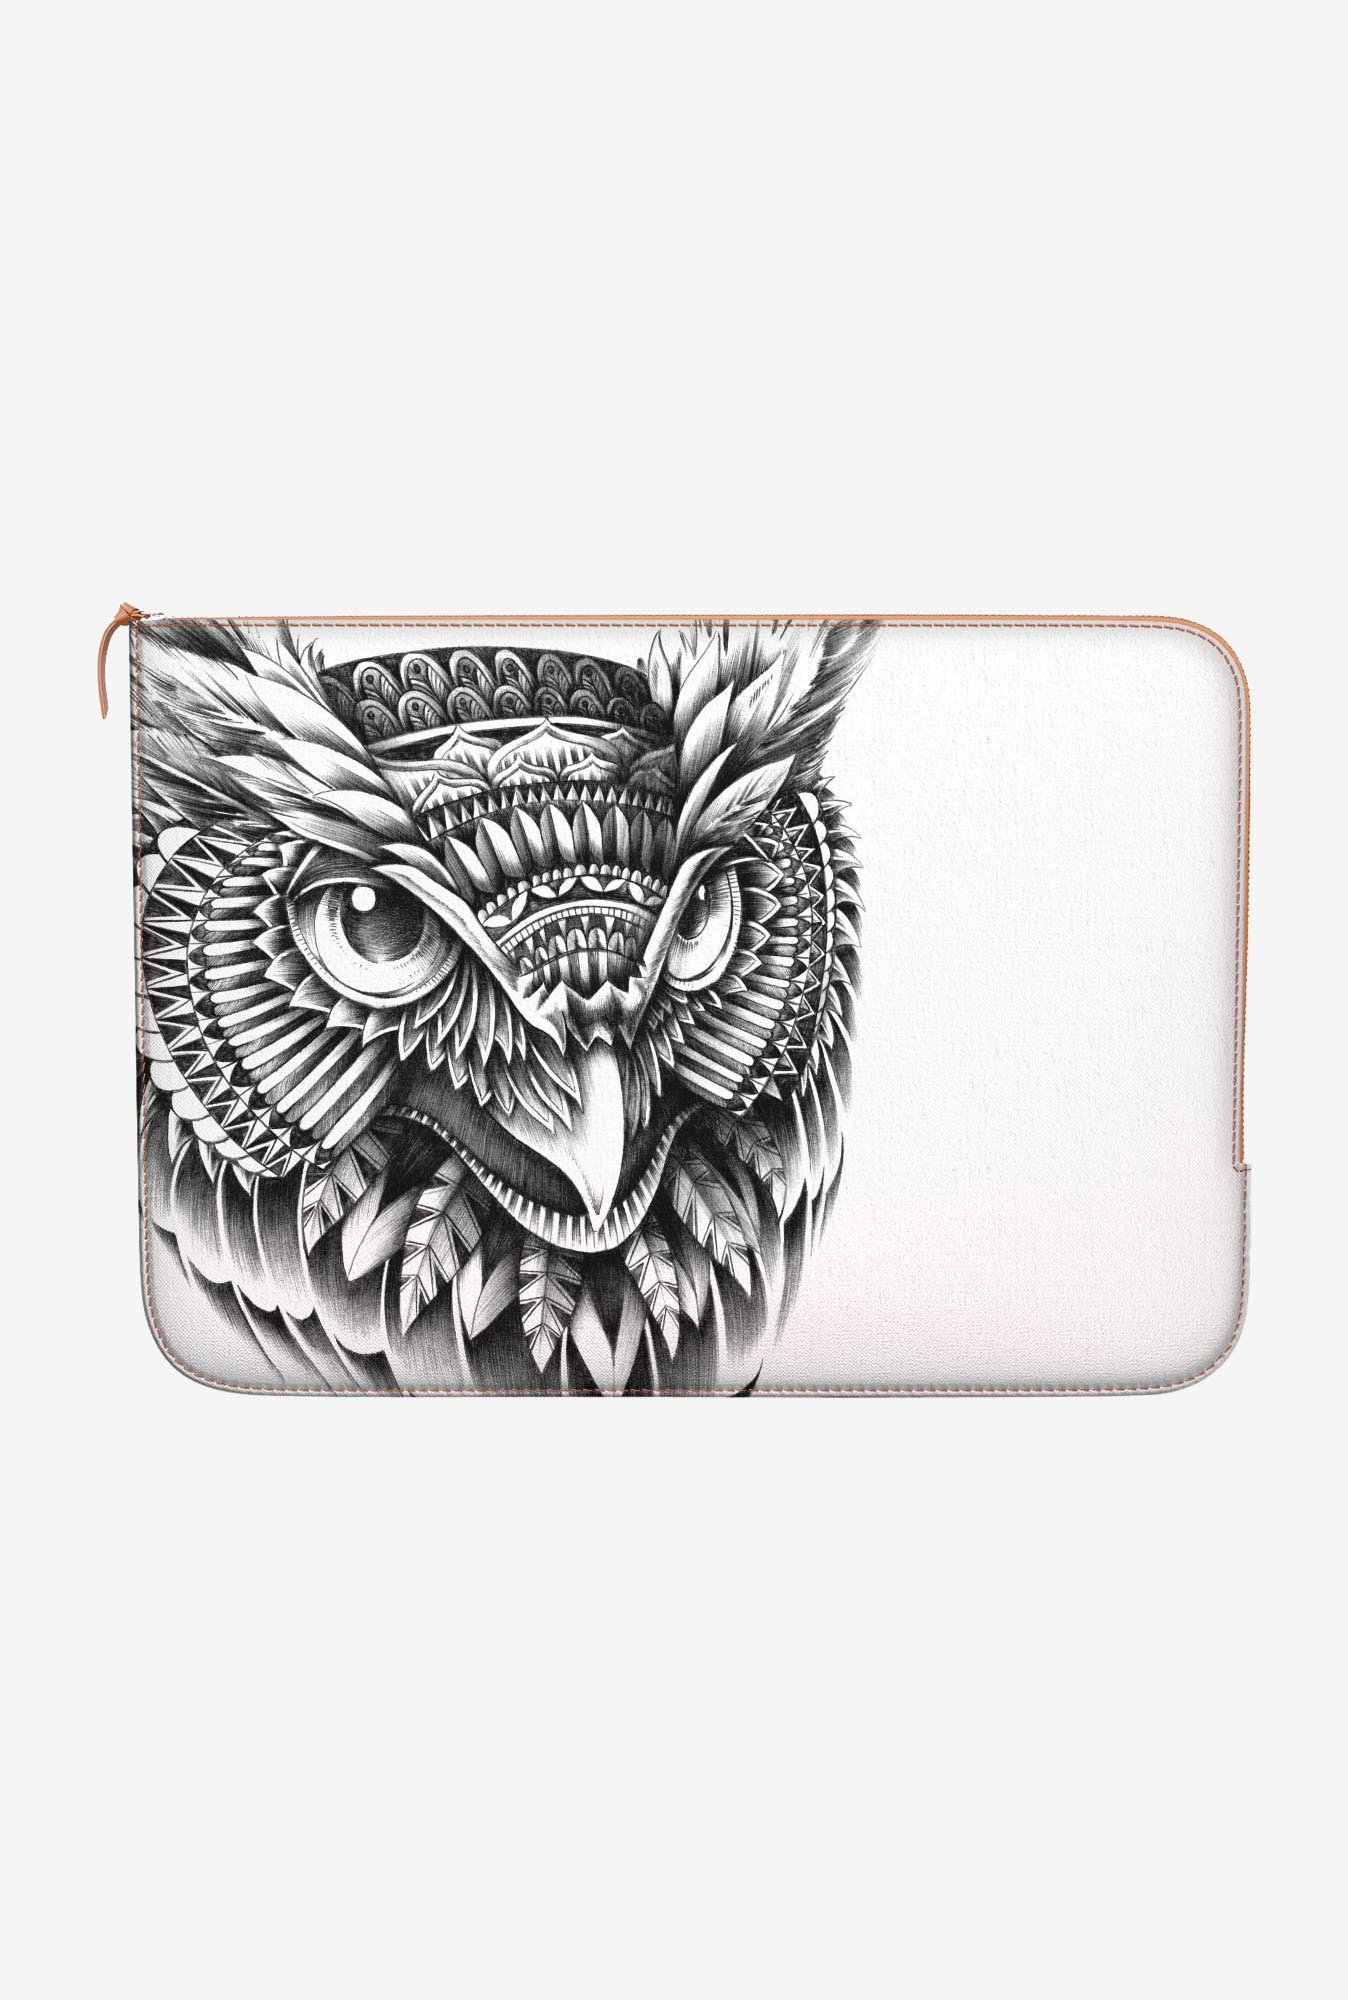 DailyObjects Ornate Owl Head MacBook 12 Zippered Sleeve